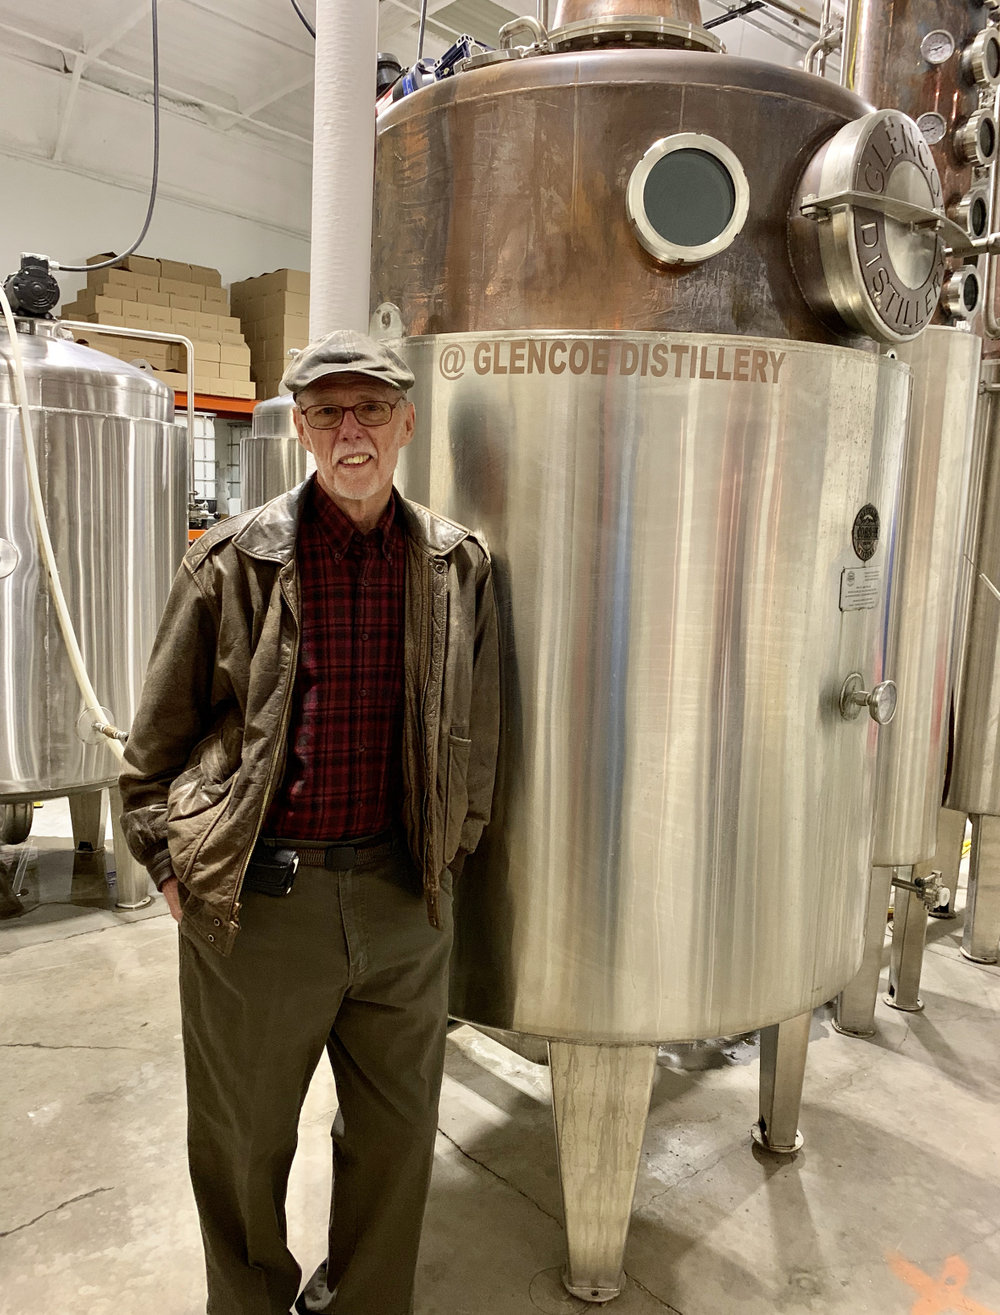 Will Ponder, an owner of Glencoe Distillery